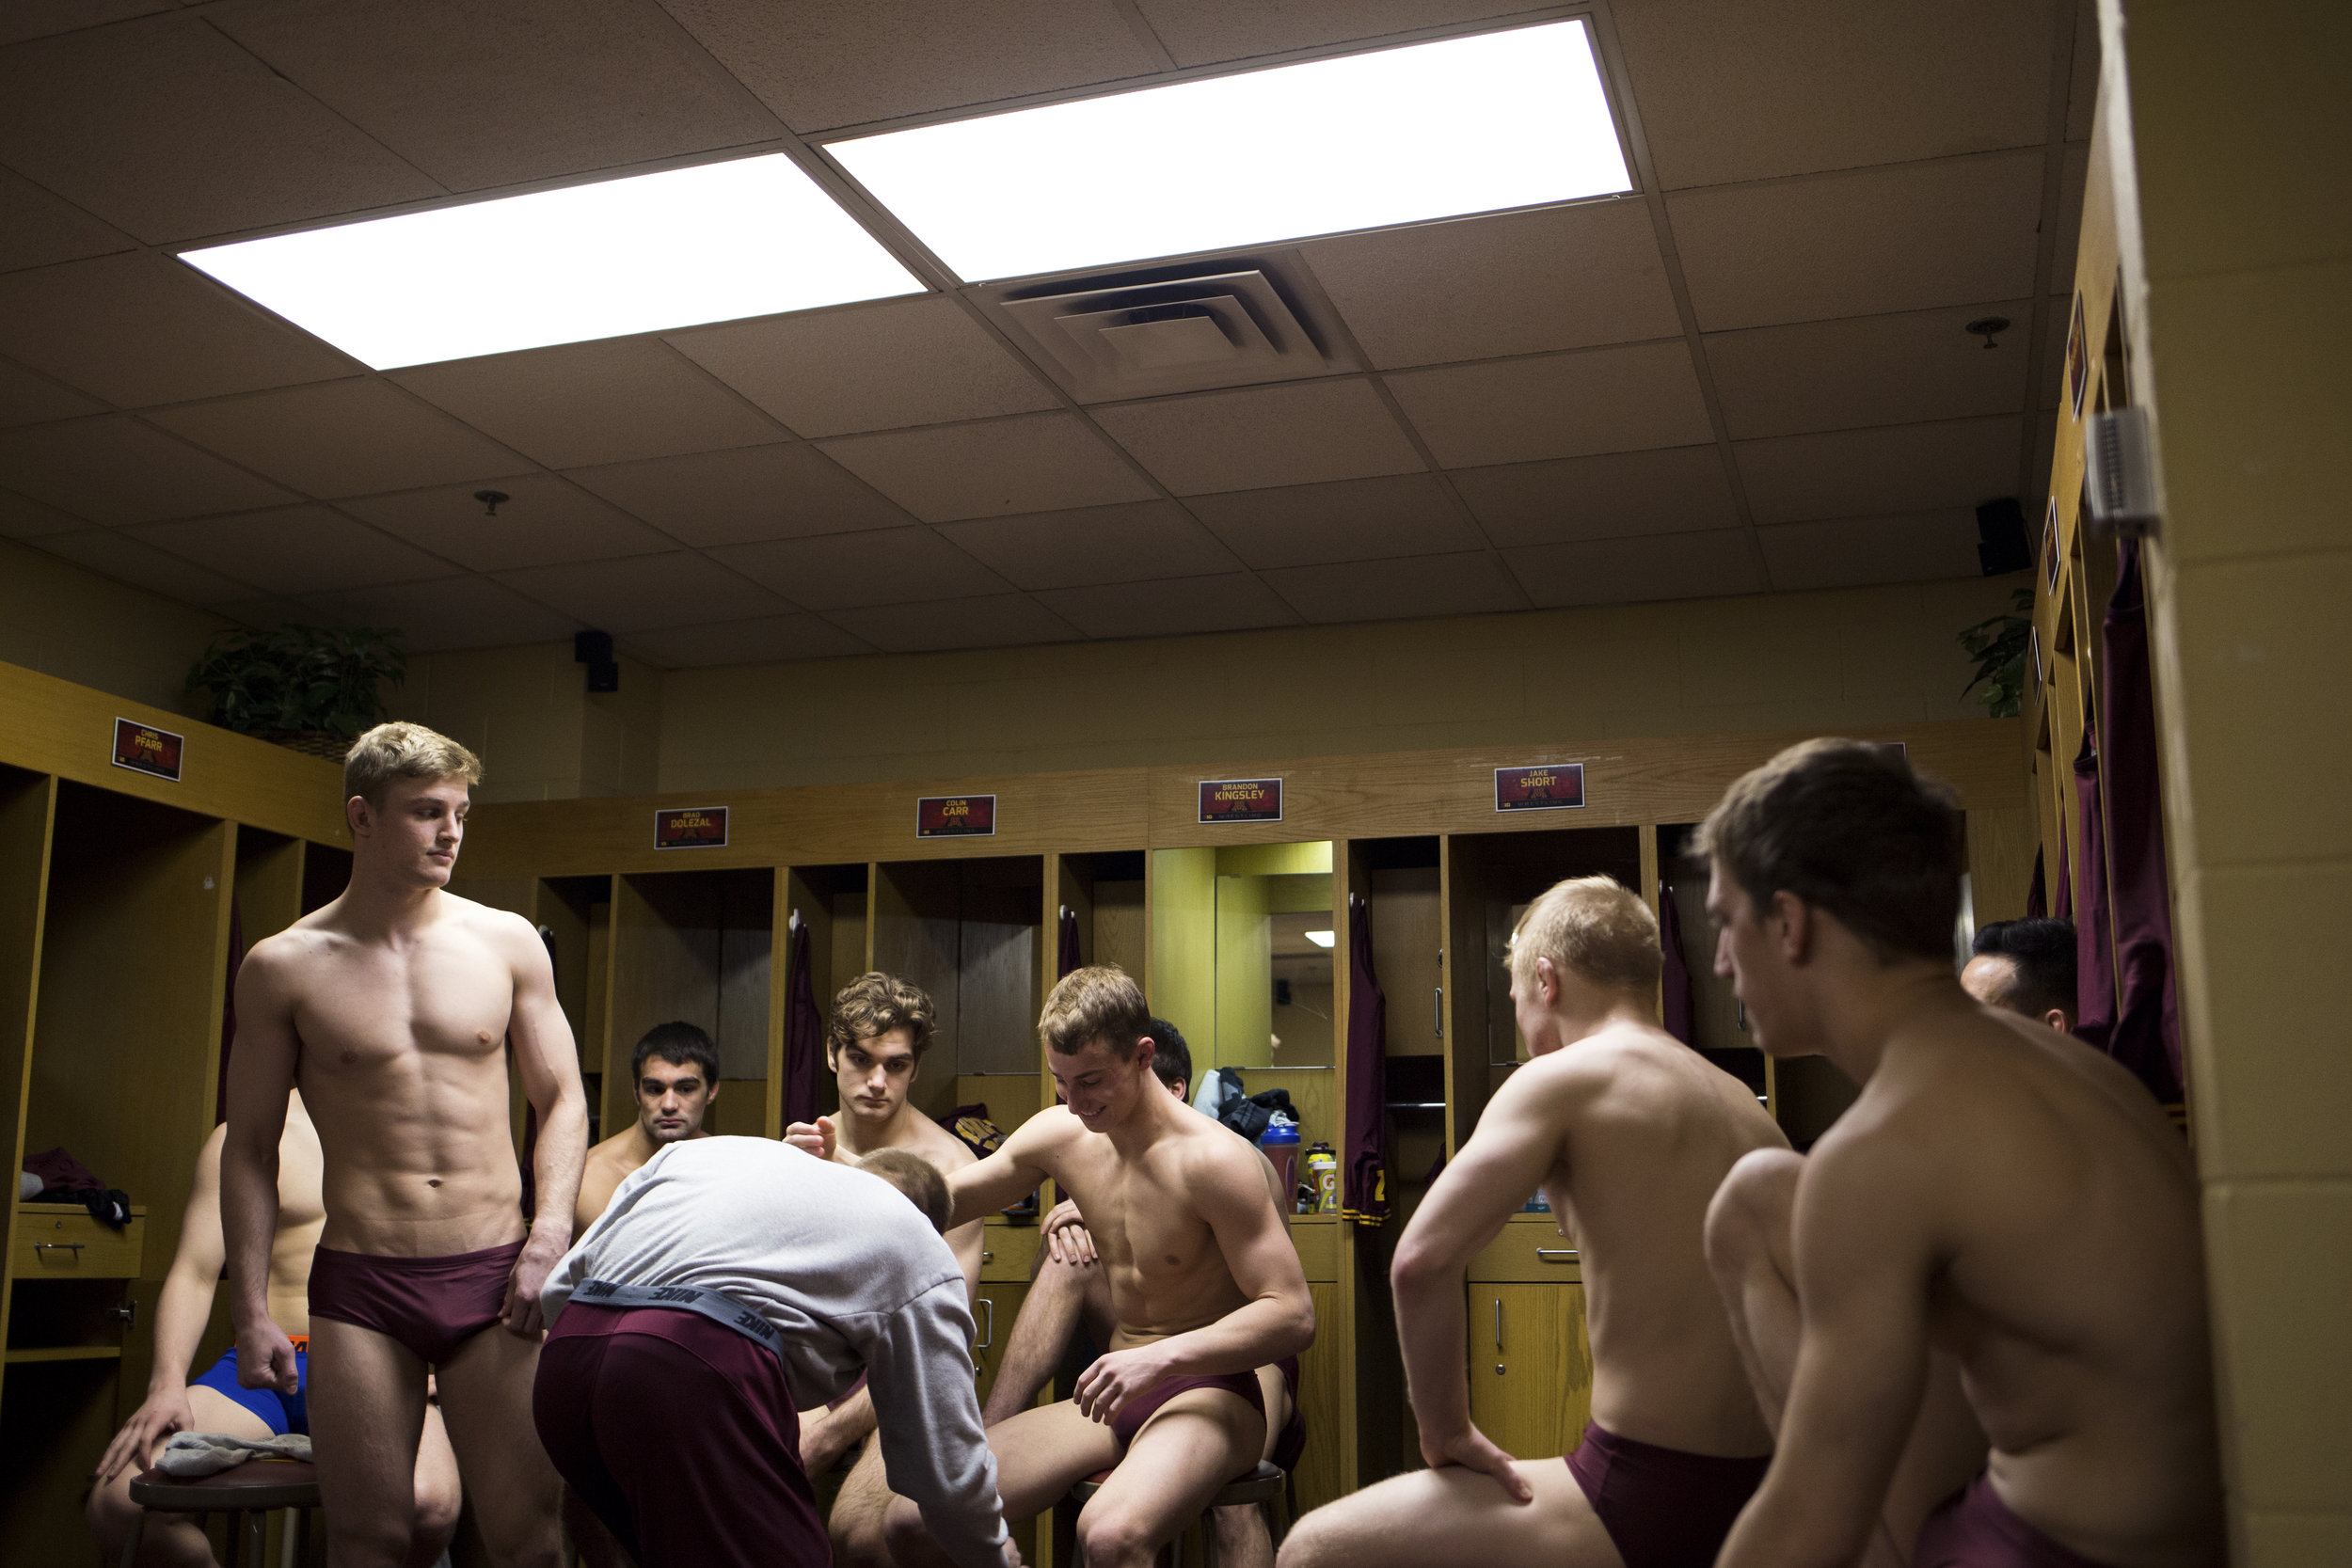 Stripped down to briefs, wrestlers await inspections and weigh-ins by a match official inside their locker room in the Sports Pavilion.